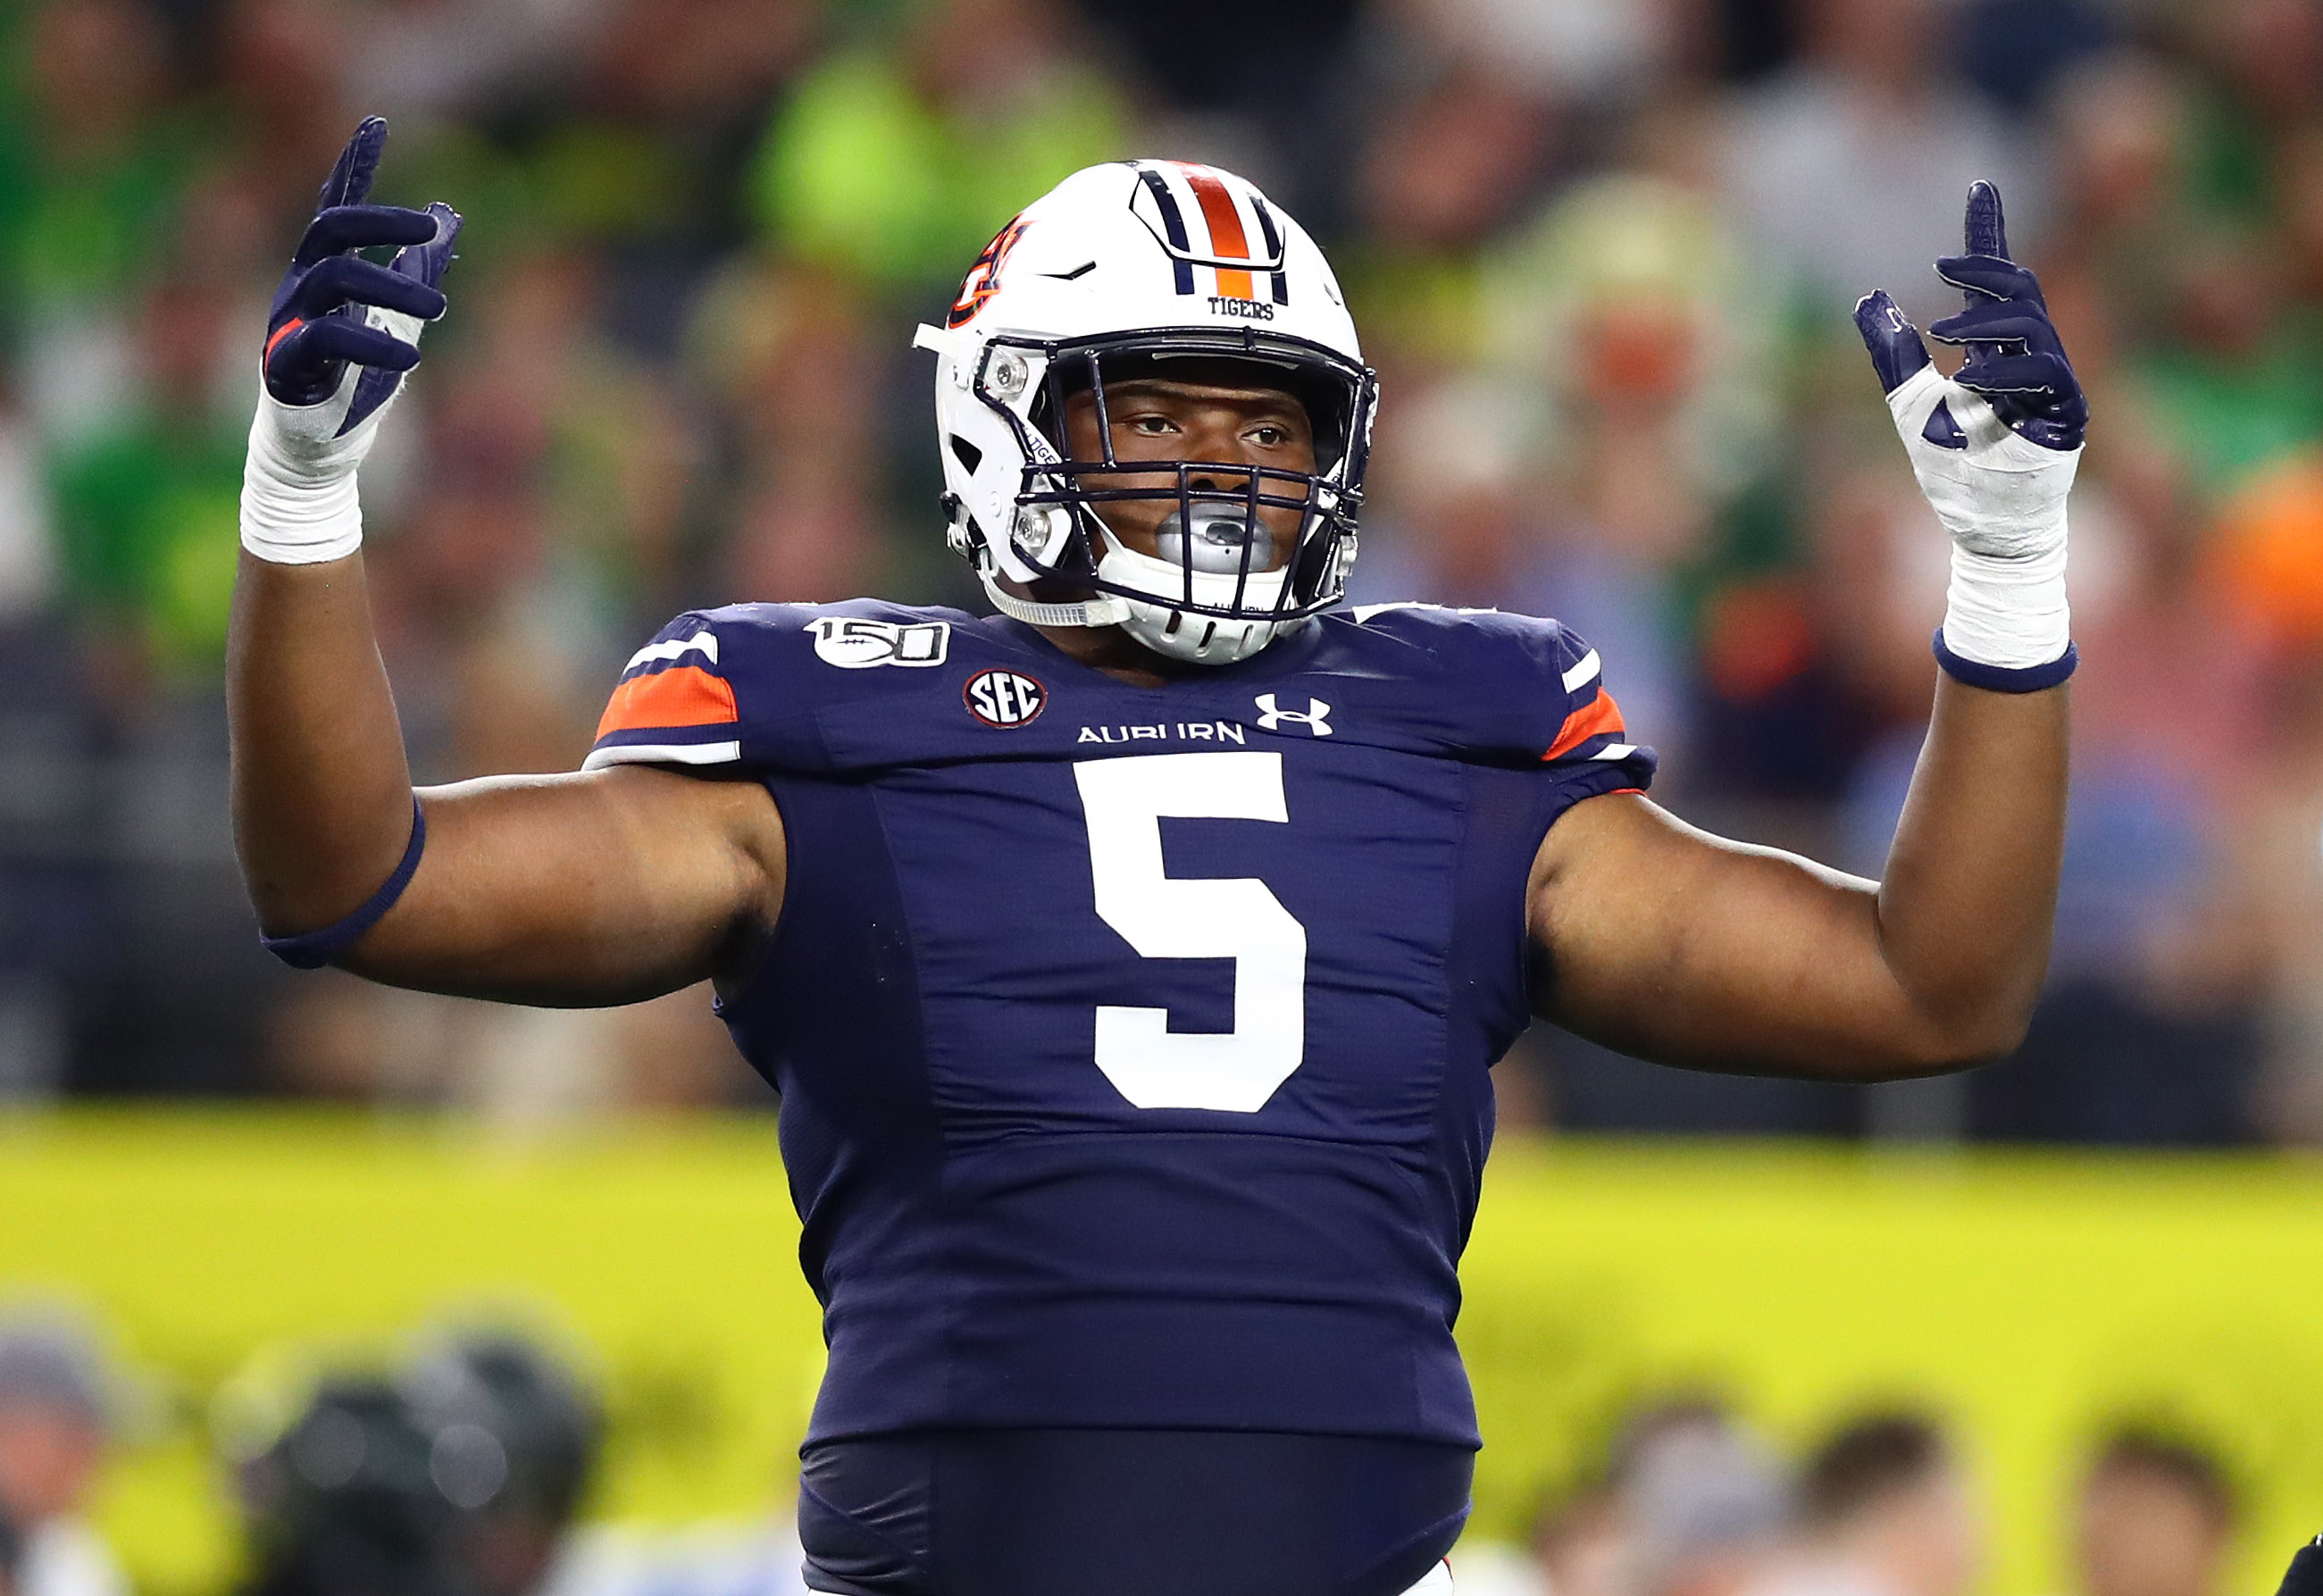 2020 NFL Draft: How Does Auburn DT Derrick Brown Make ...